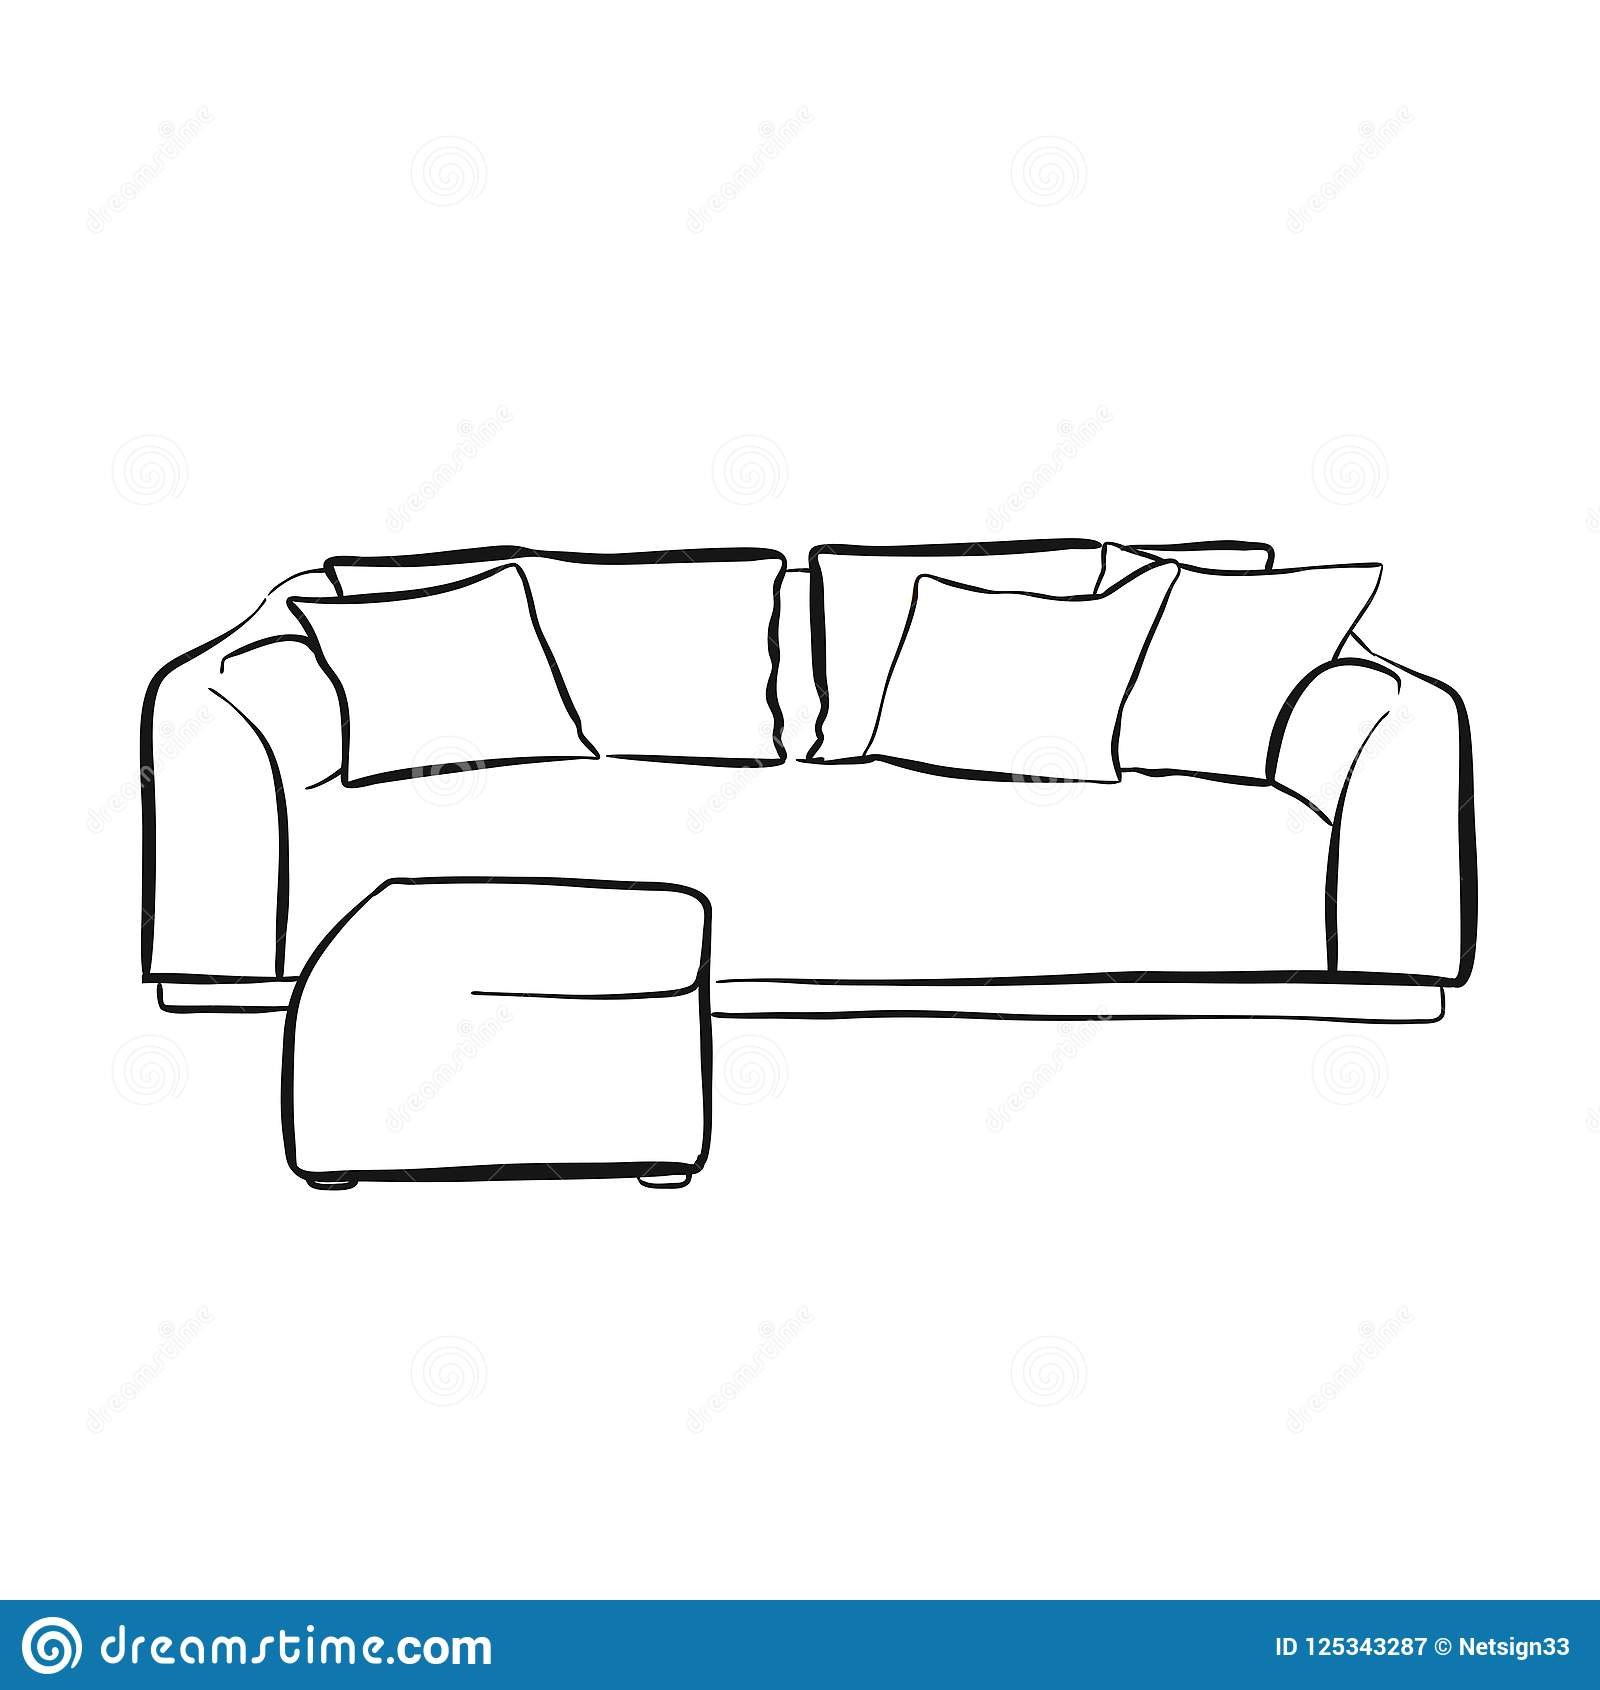 Couch clipart easy. Drawing tanamen